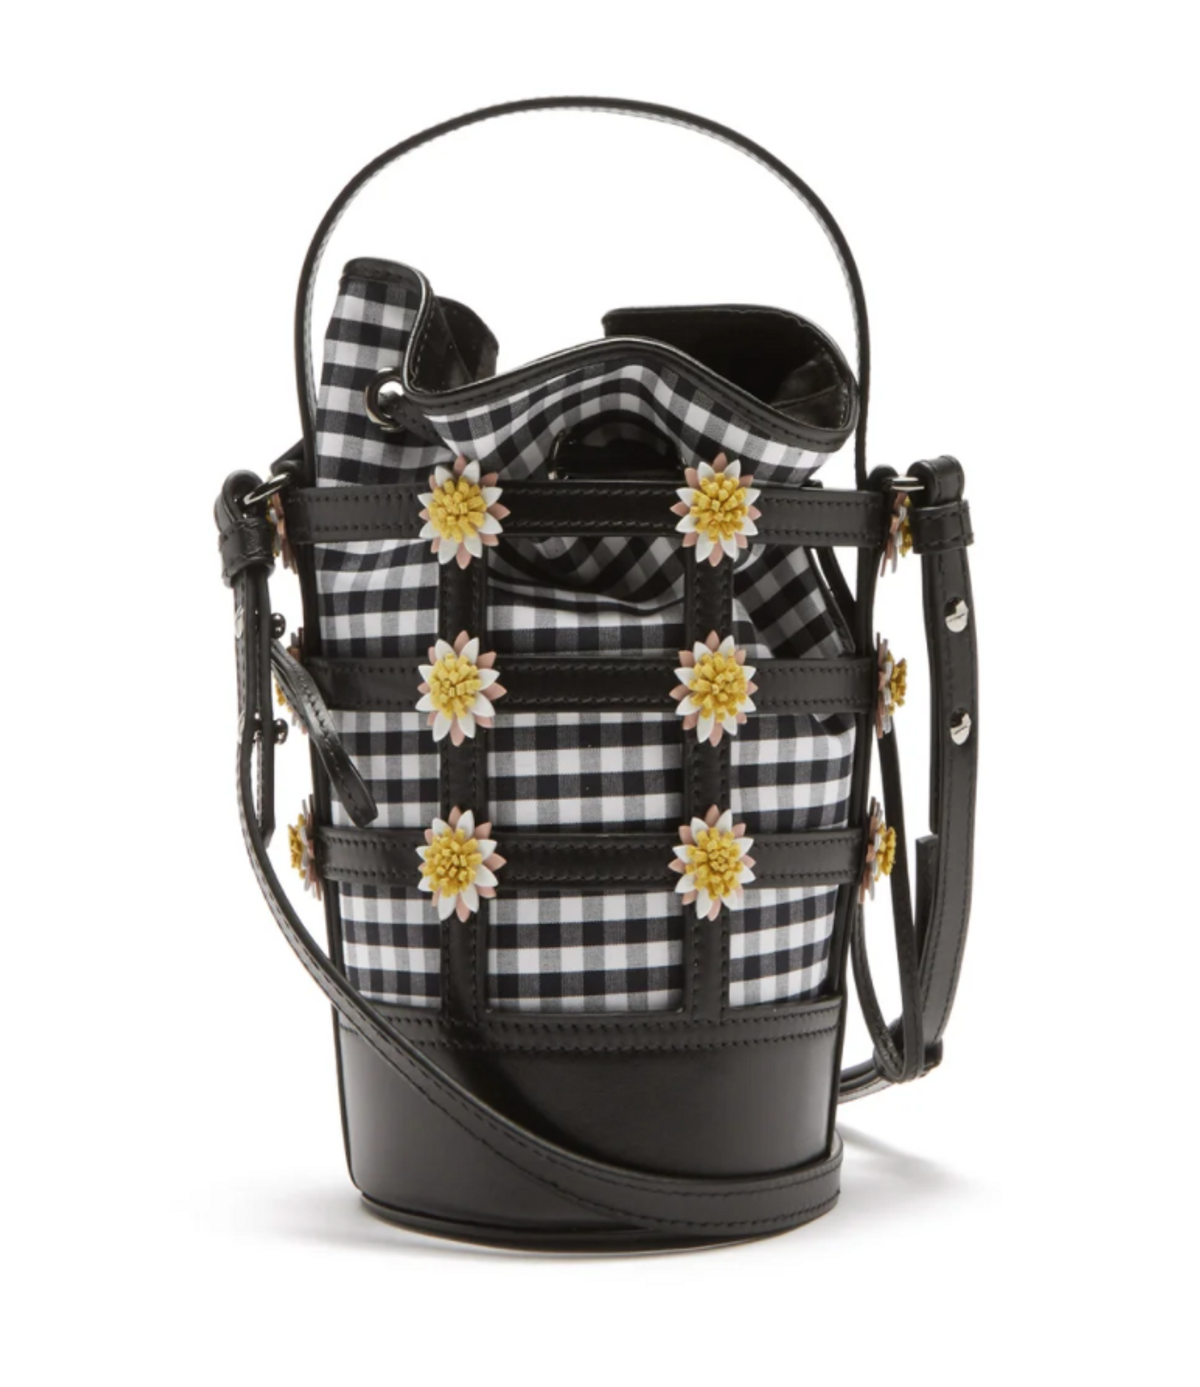 Miss Daisy Leather and Gingham Bucket Bag